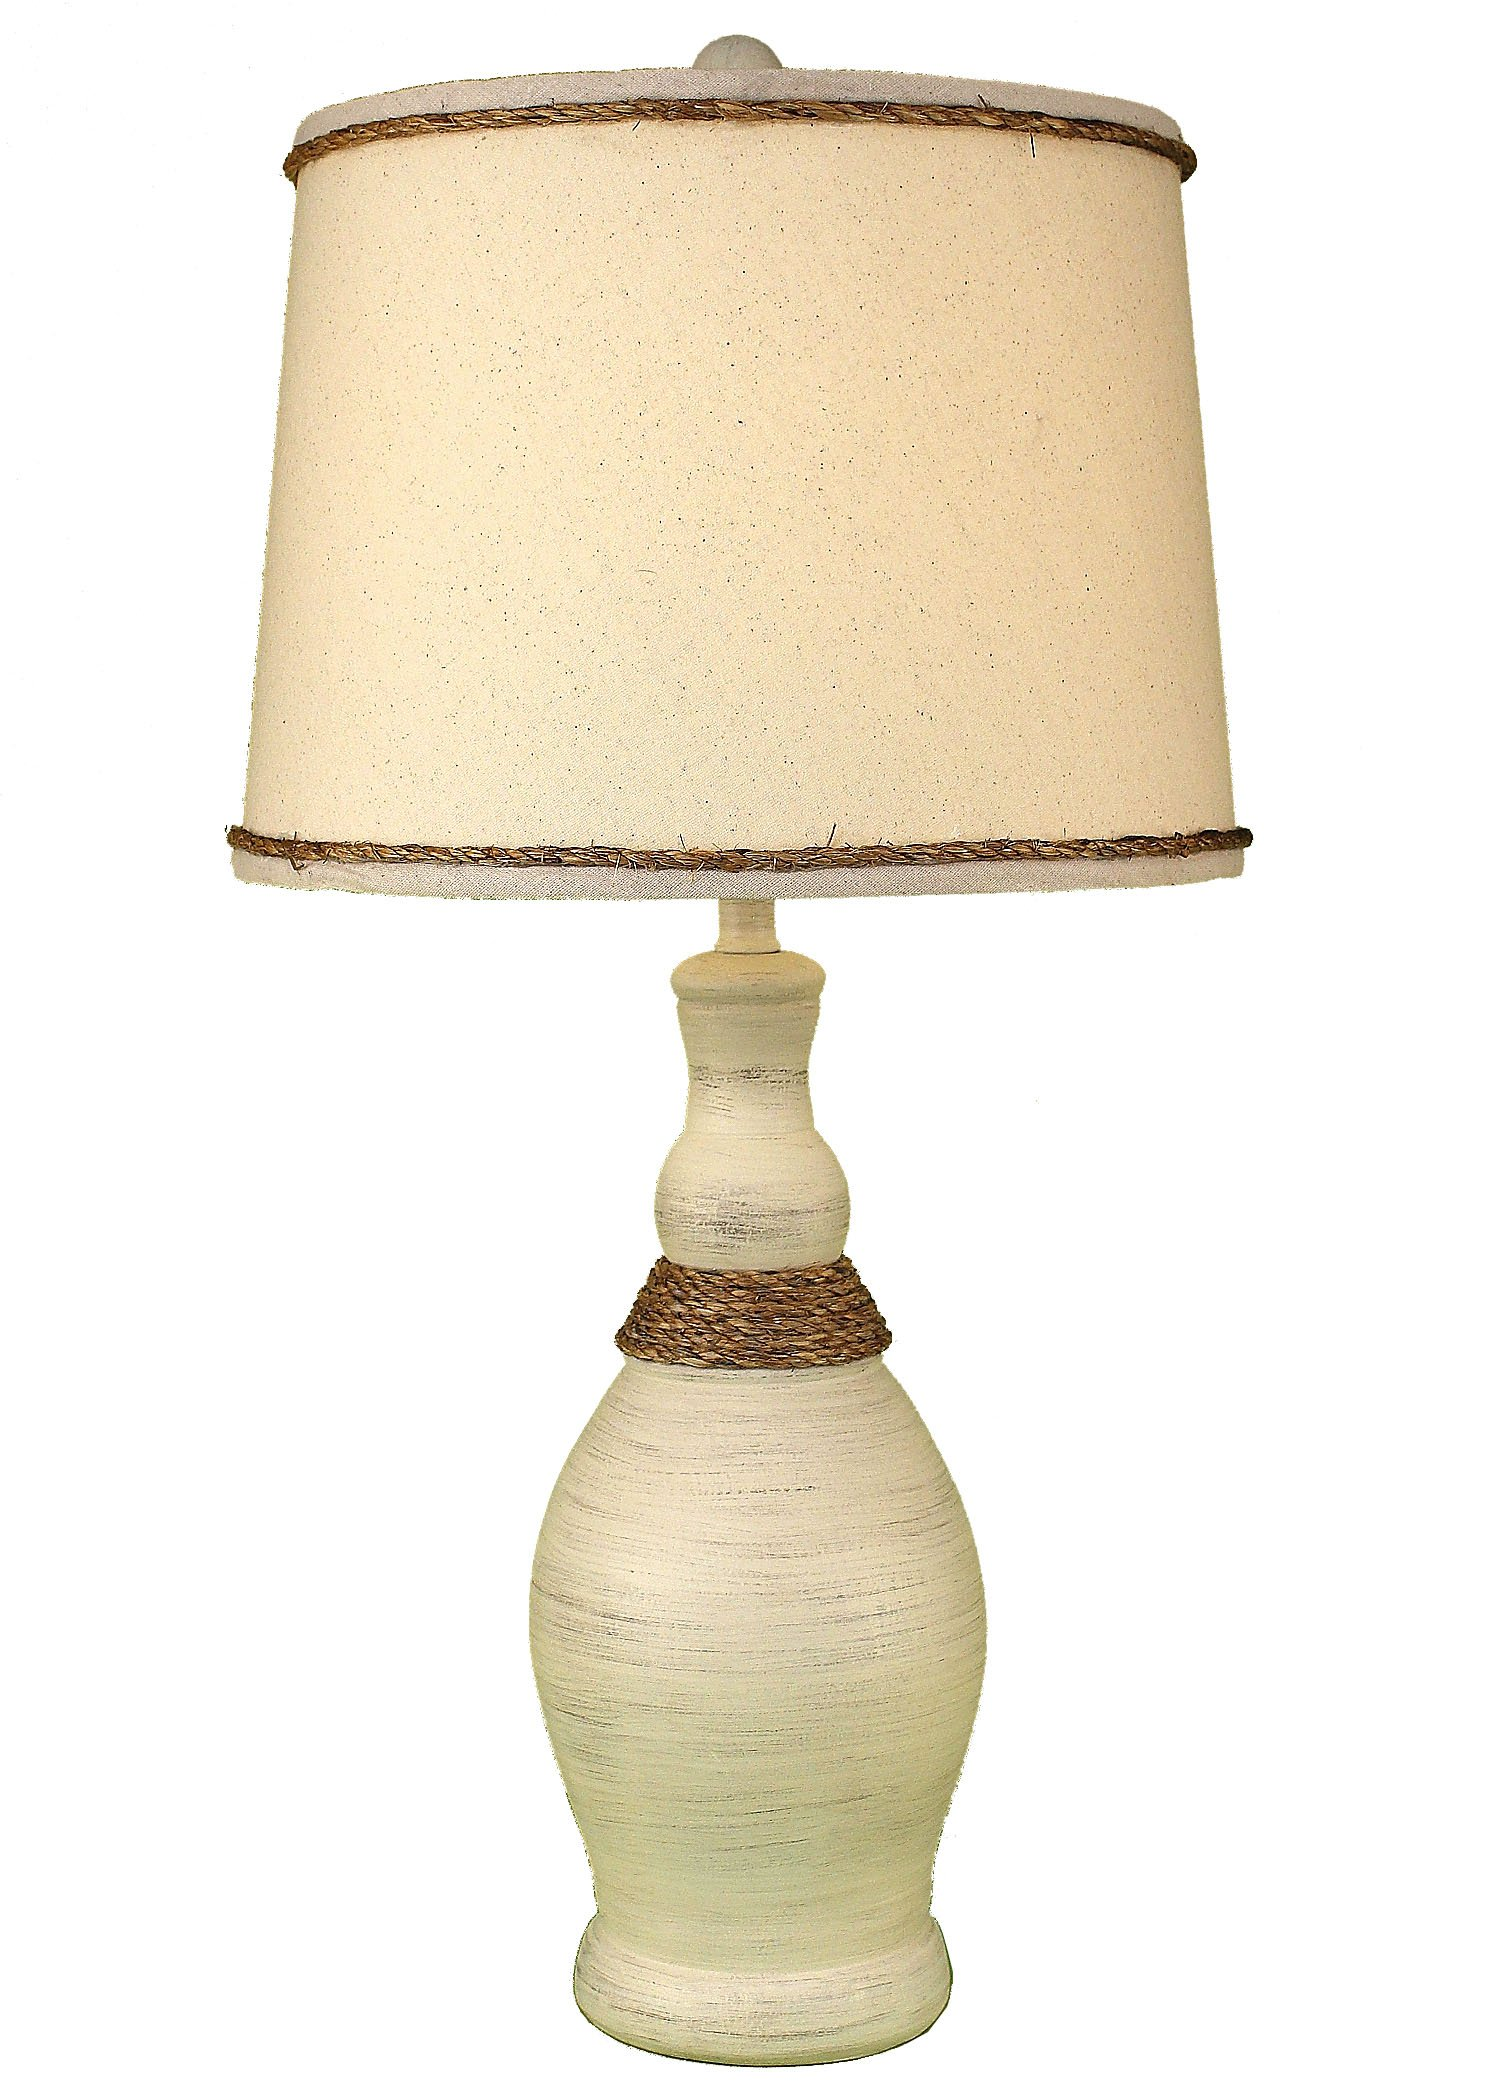 cottage slender neck table lamp weathered rope accent coast inexpensive round coffee tabletop decorative accessories dark wood console with drawers linen company cherry dining and